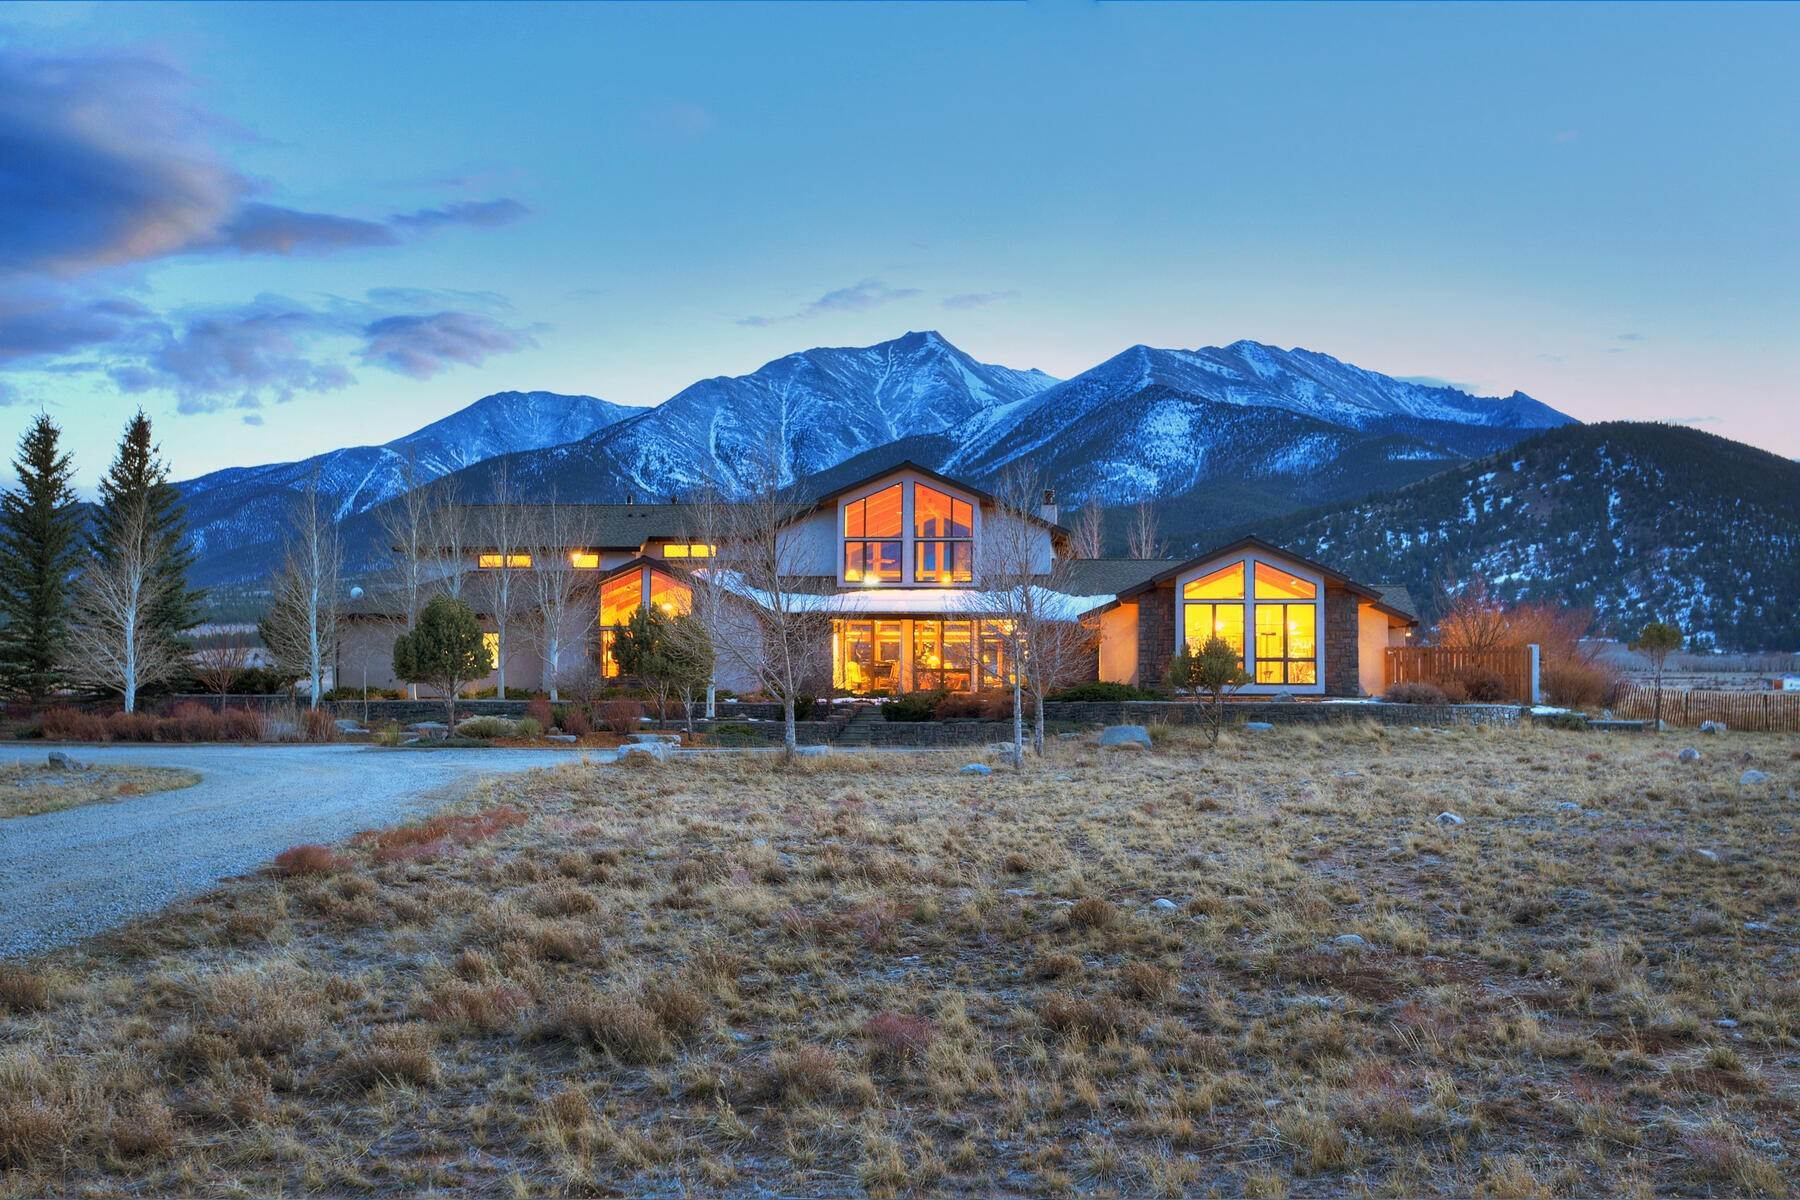 Single Family Homes for Sale at Soaring Peaks Home 27484 County Road 339 Buena Vista, Colorado 81211 United States